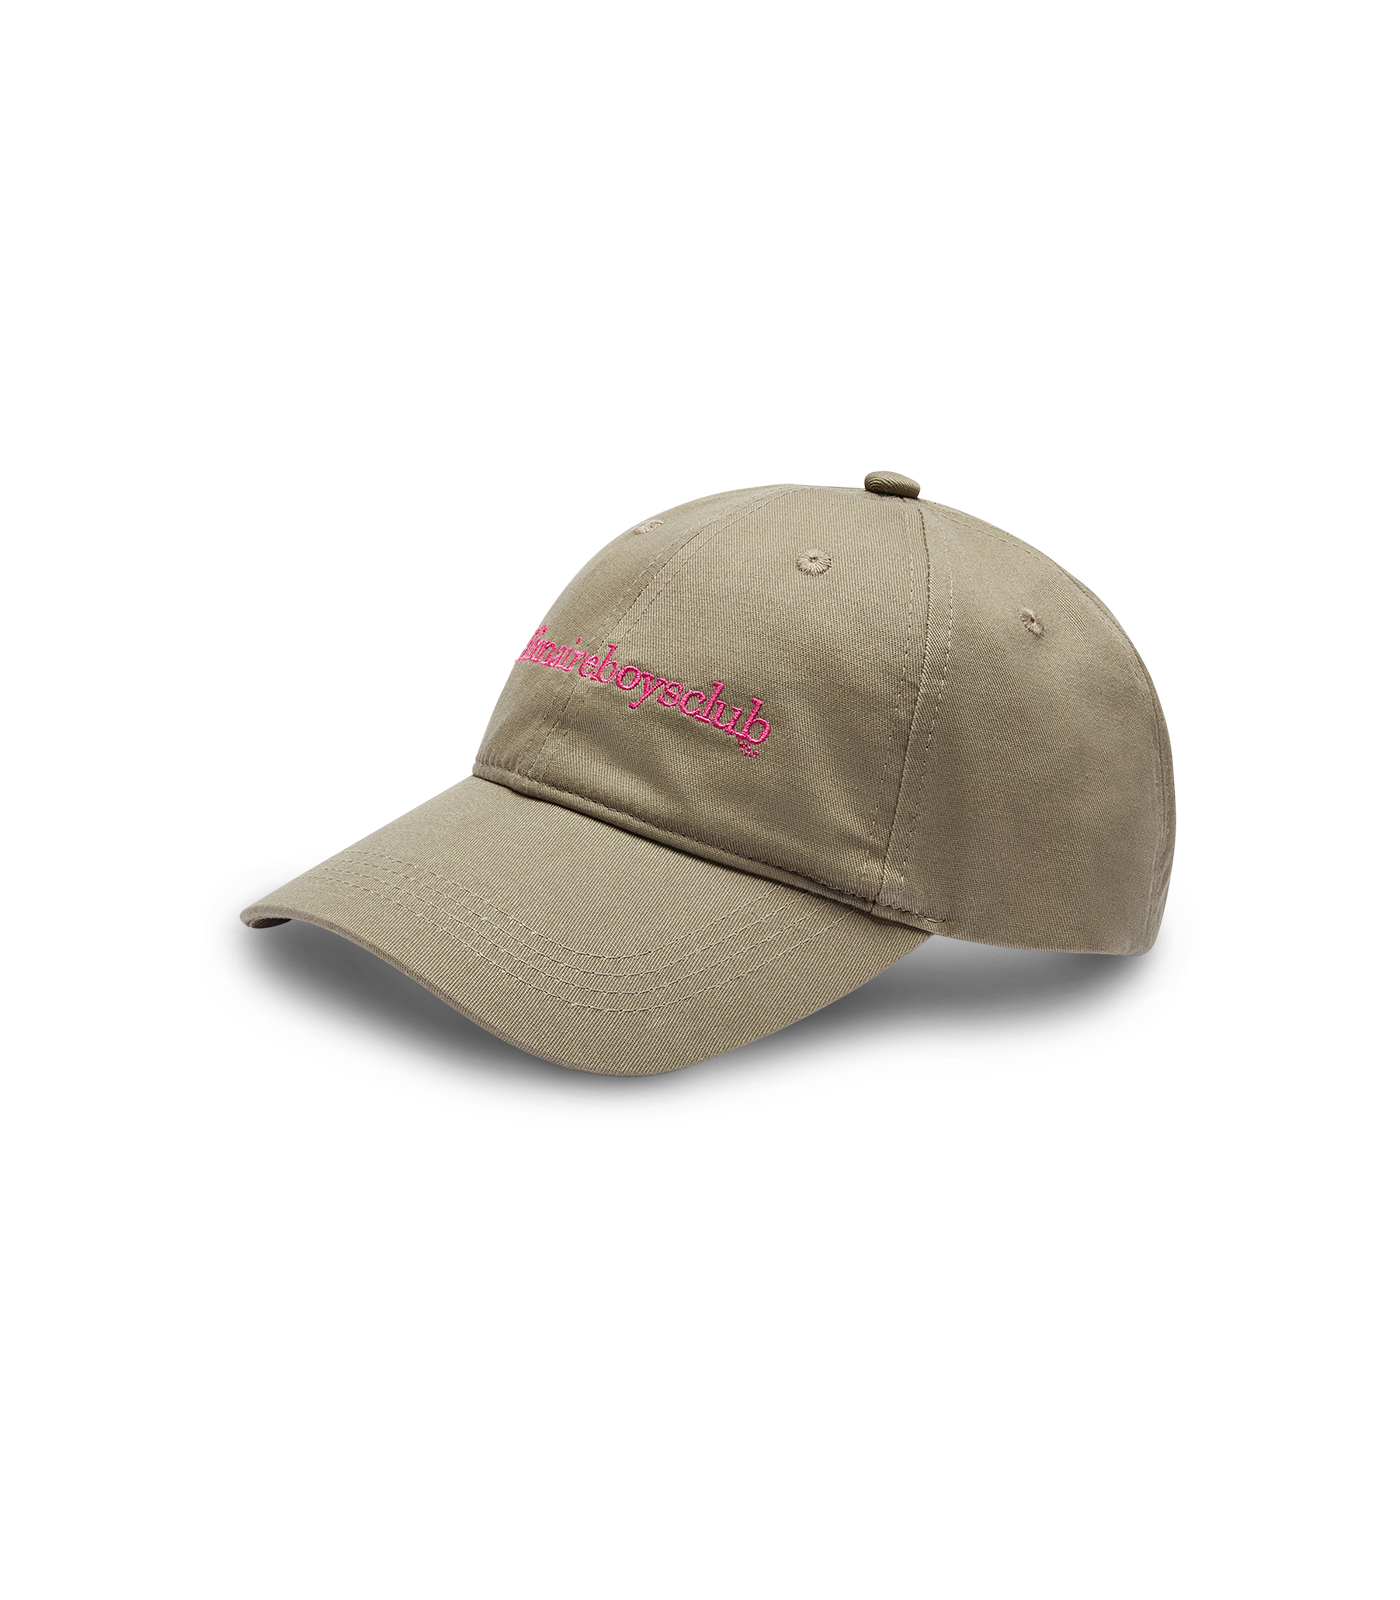 EMBROIDERED CURVED VISOR CAP - OLIVE